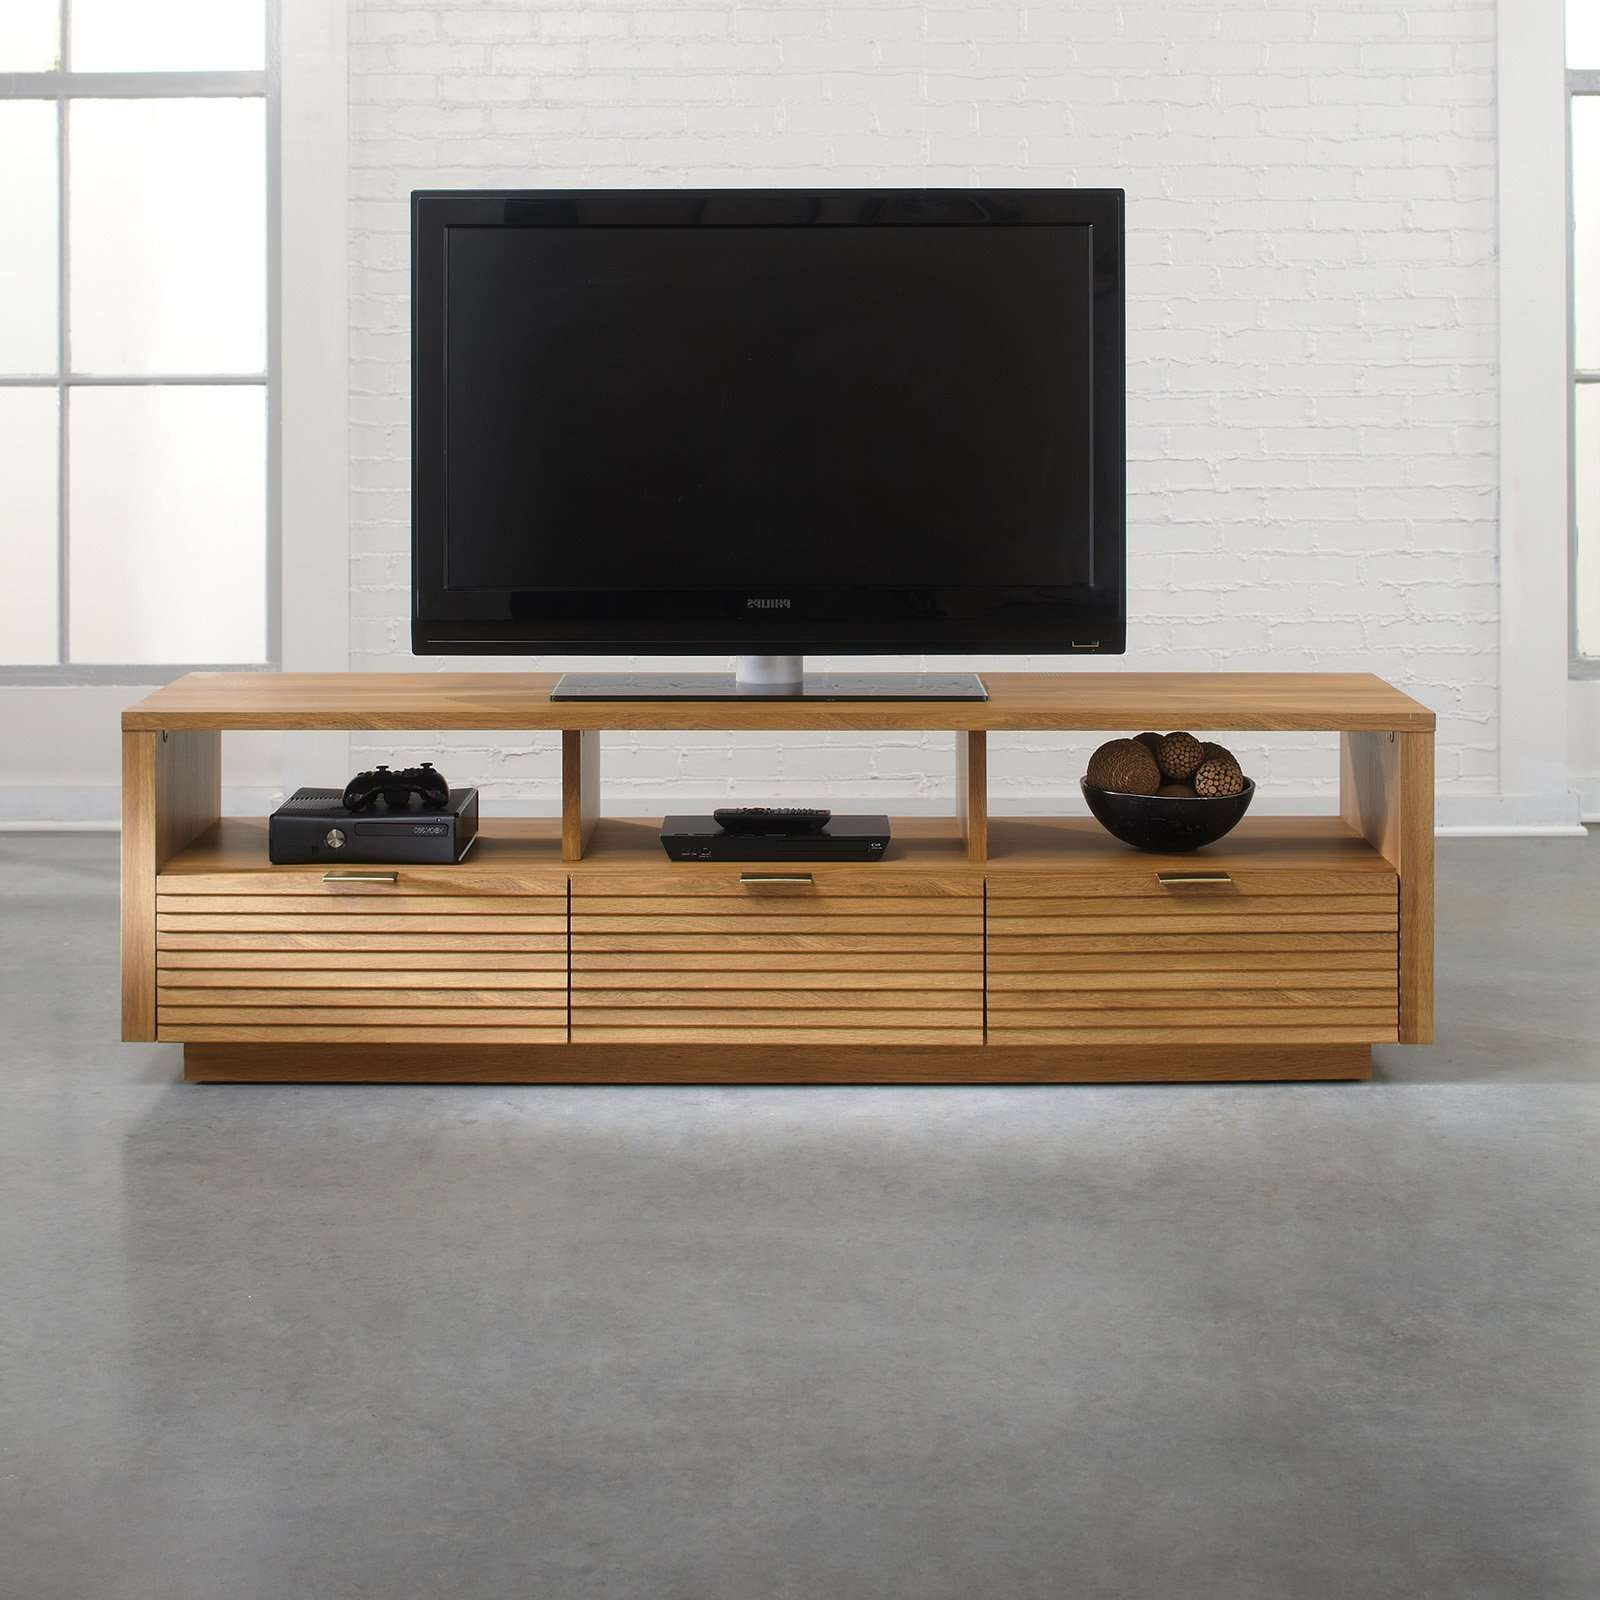 Belham Living Carter Mid Century Modern Tv Stand | Hayneedle With Modern Low Profile Tv Stands (View 12 of 15)